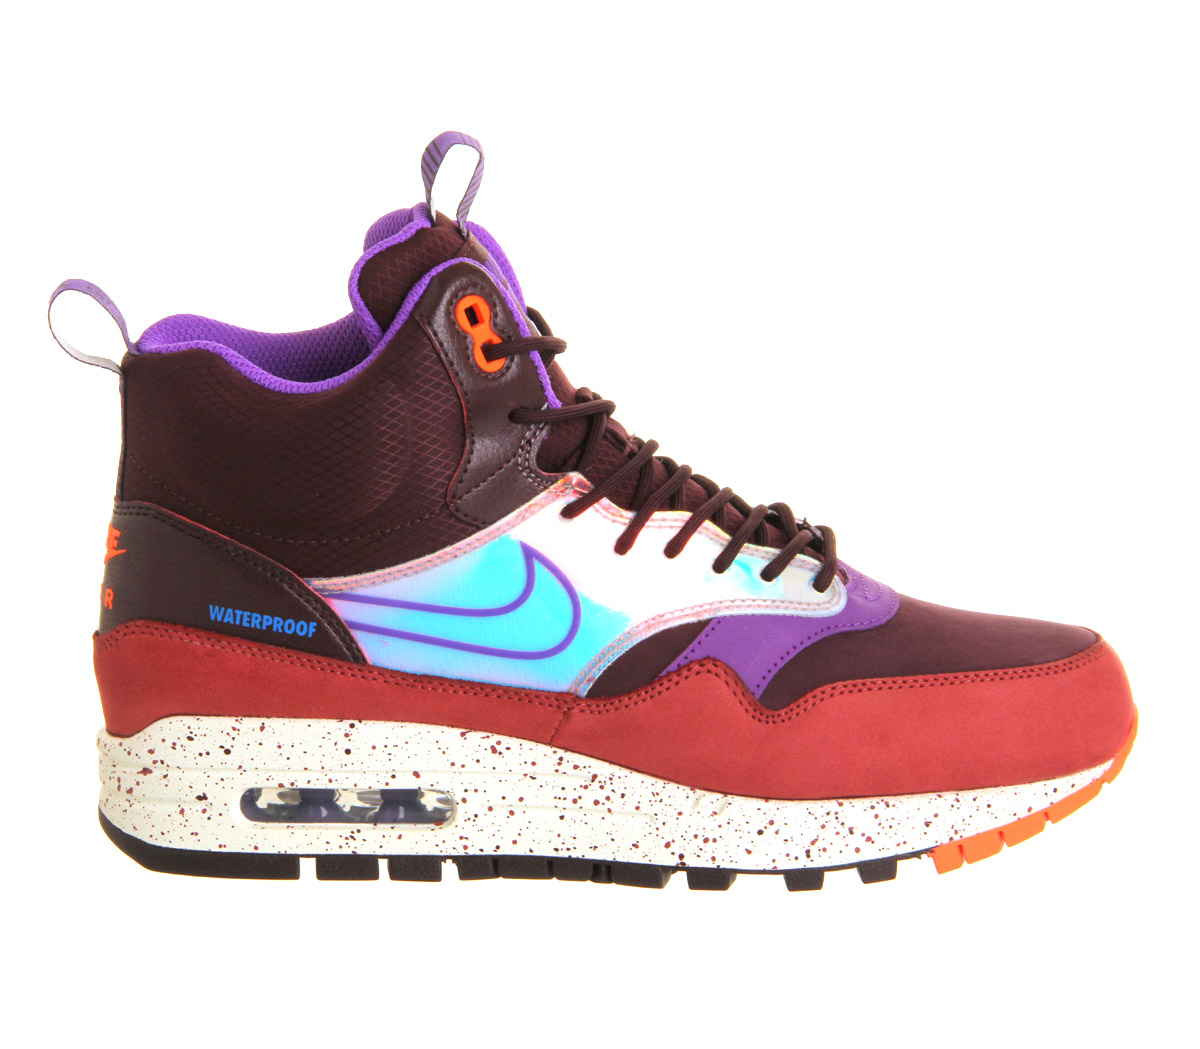 lyst nike air max 1 mid sneakerboots in purple. Black Bedroom Furniture Sets. Home Design Ideas